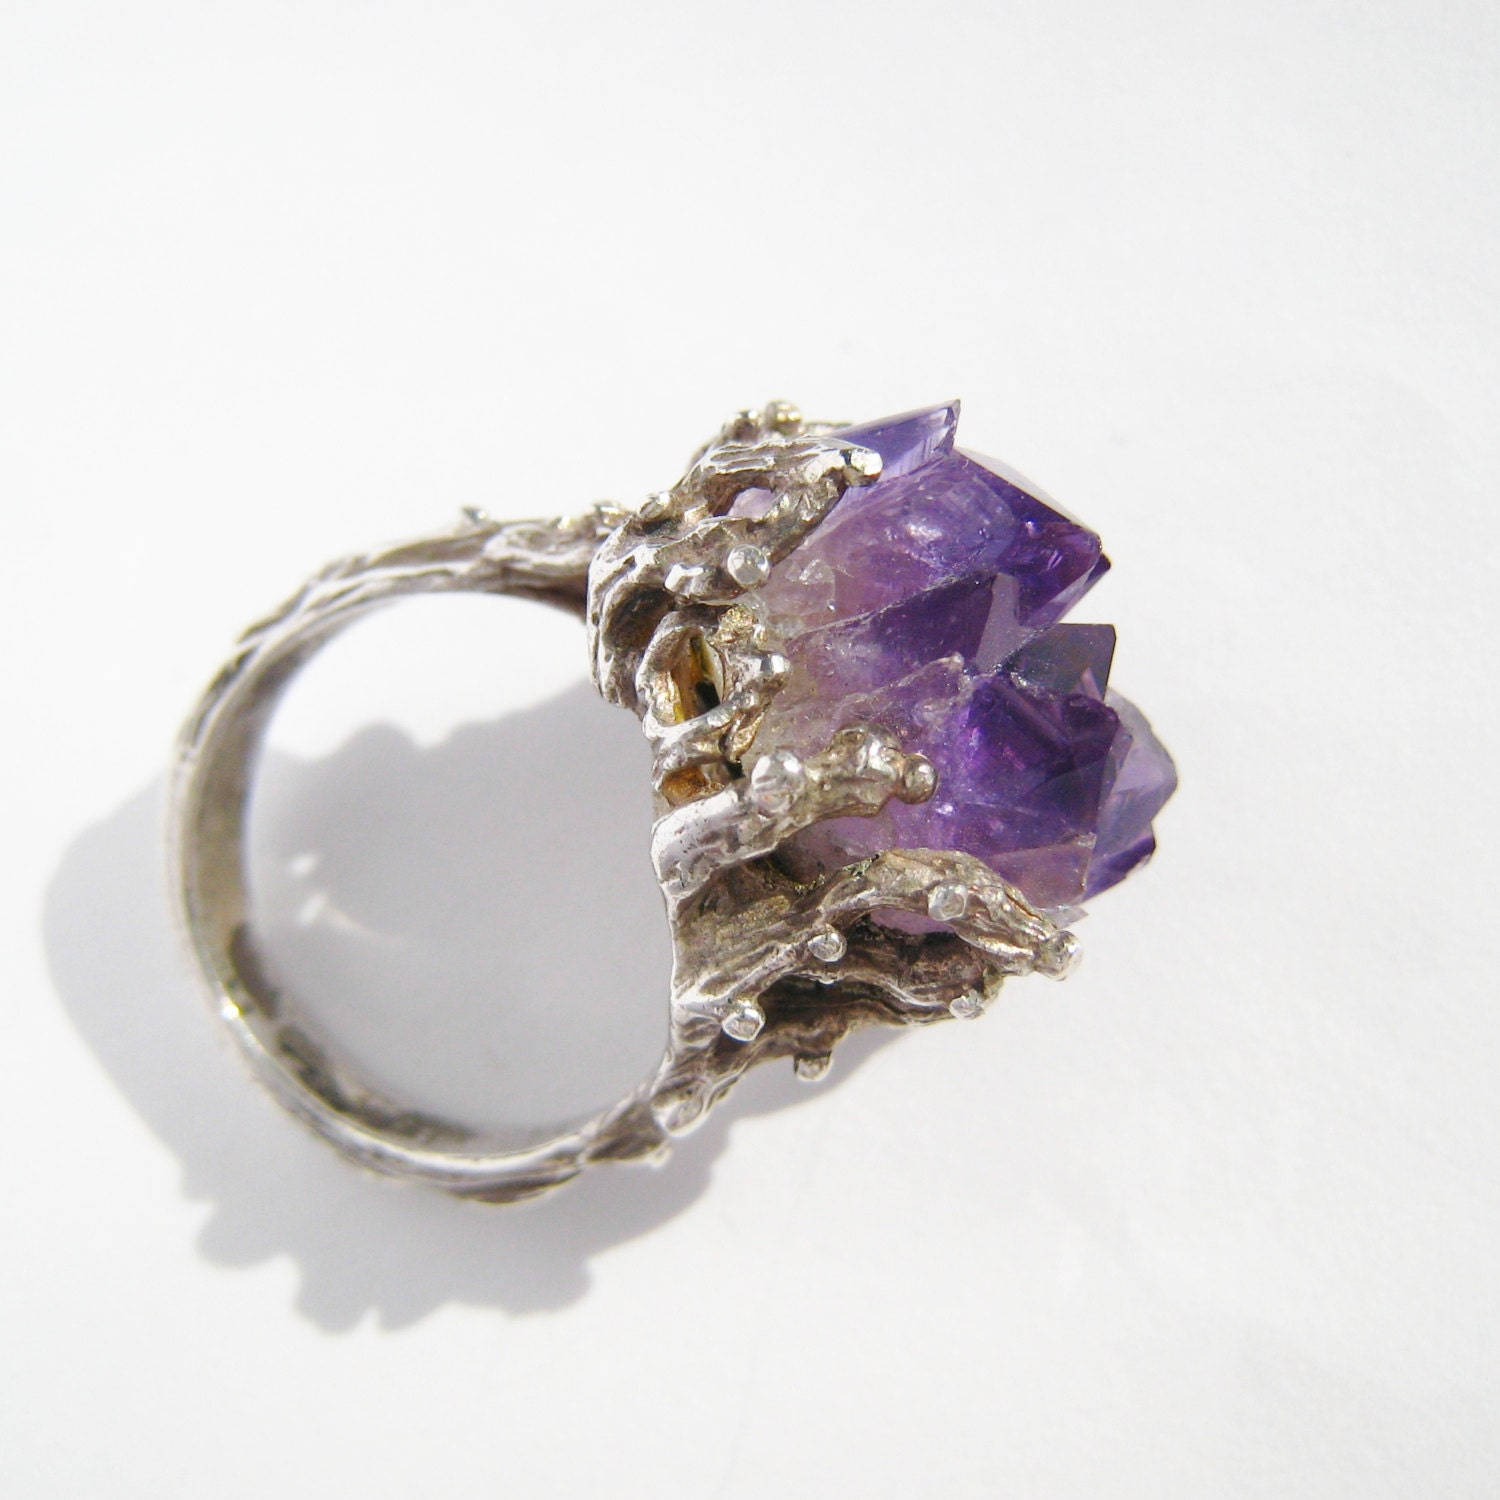 amethyst ring vintage - photo #25